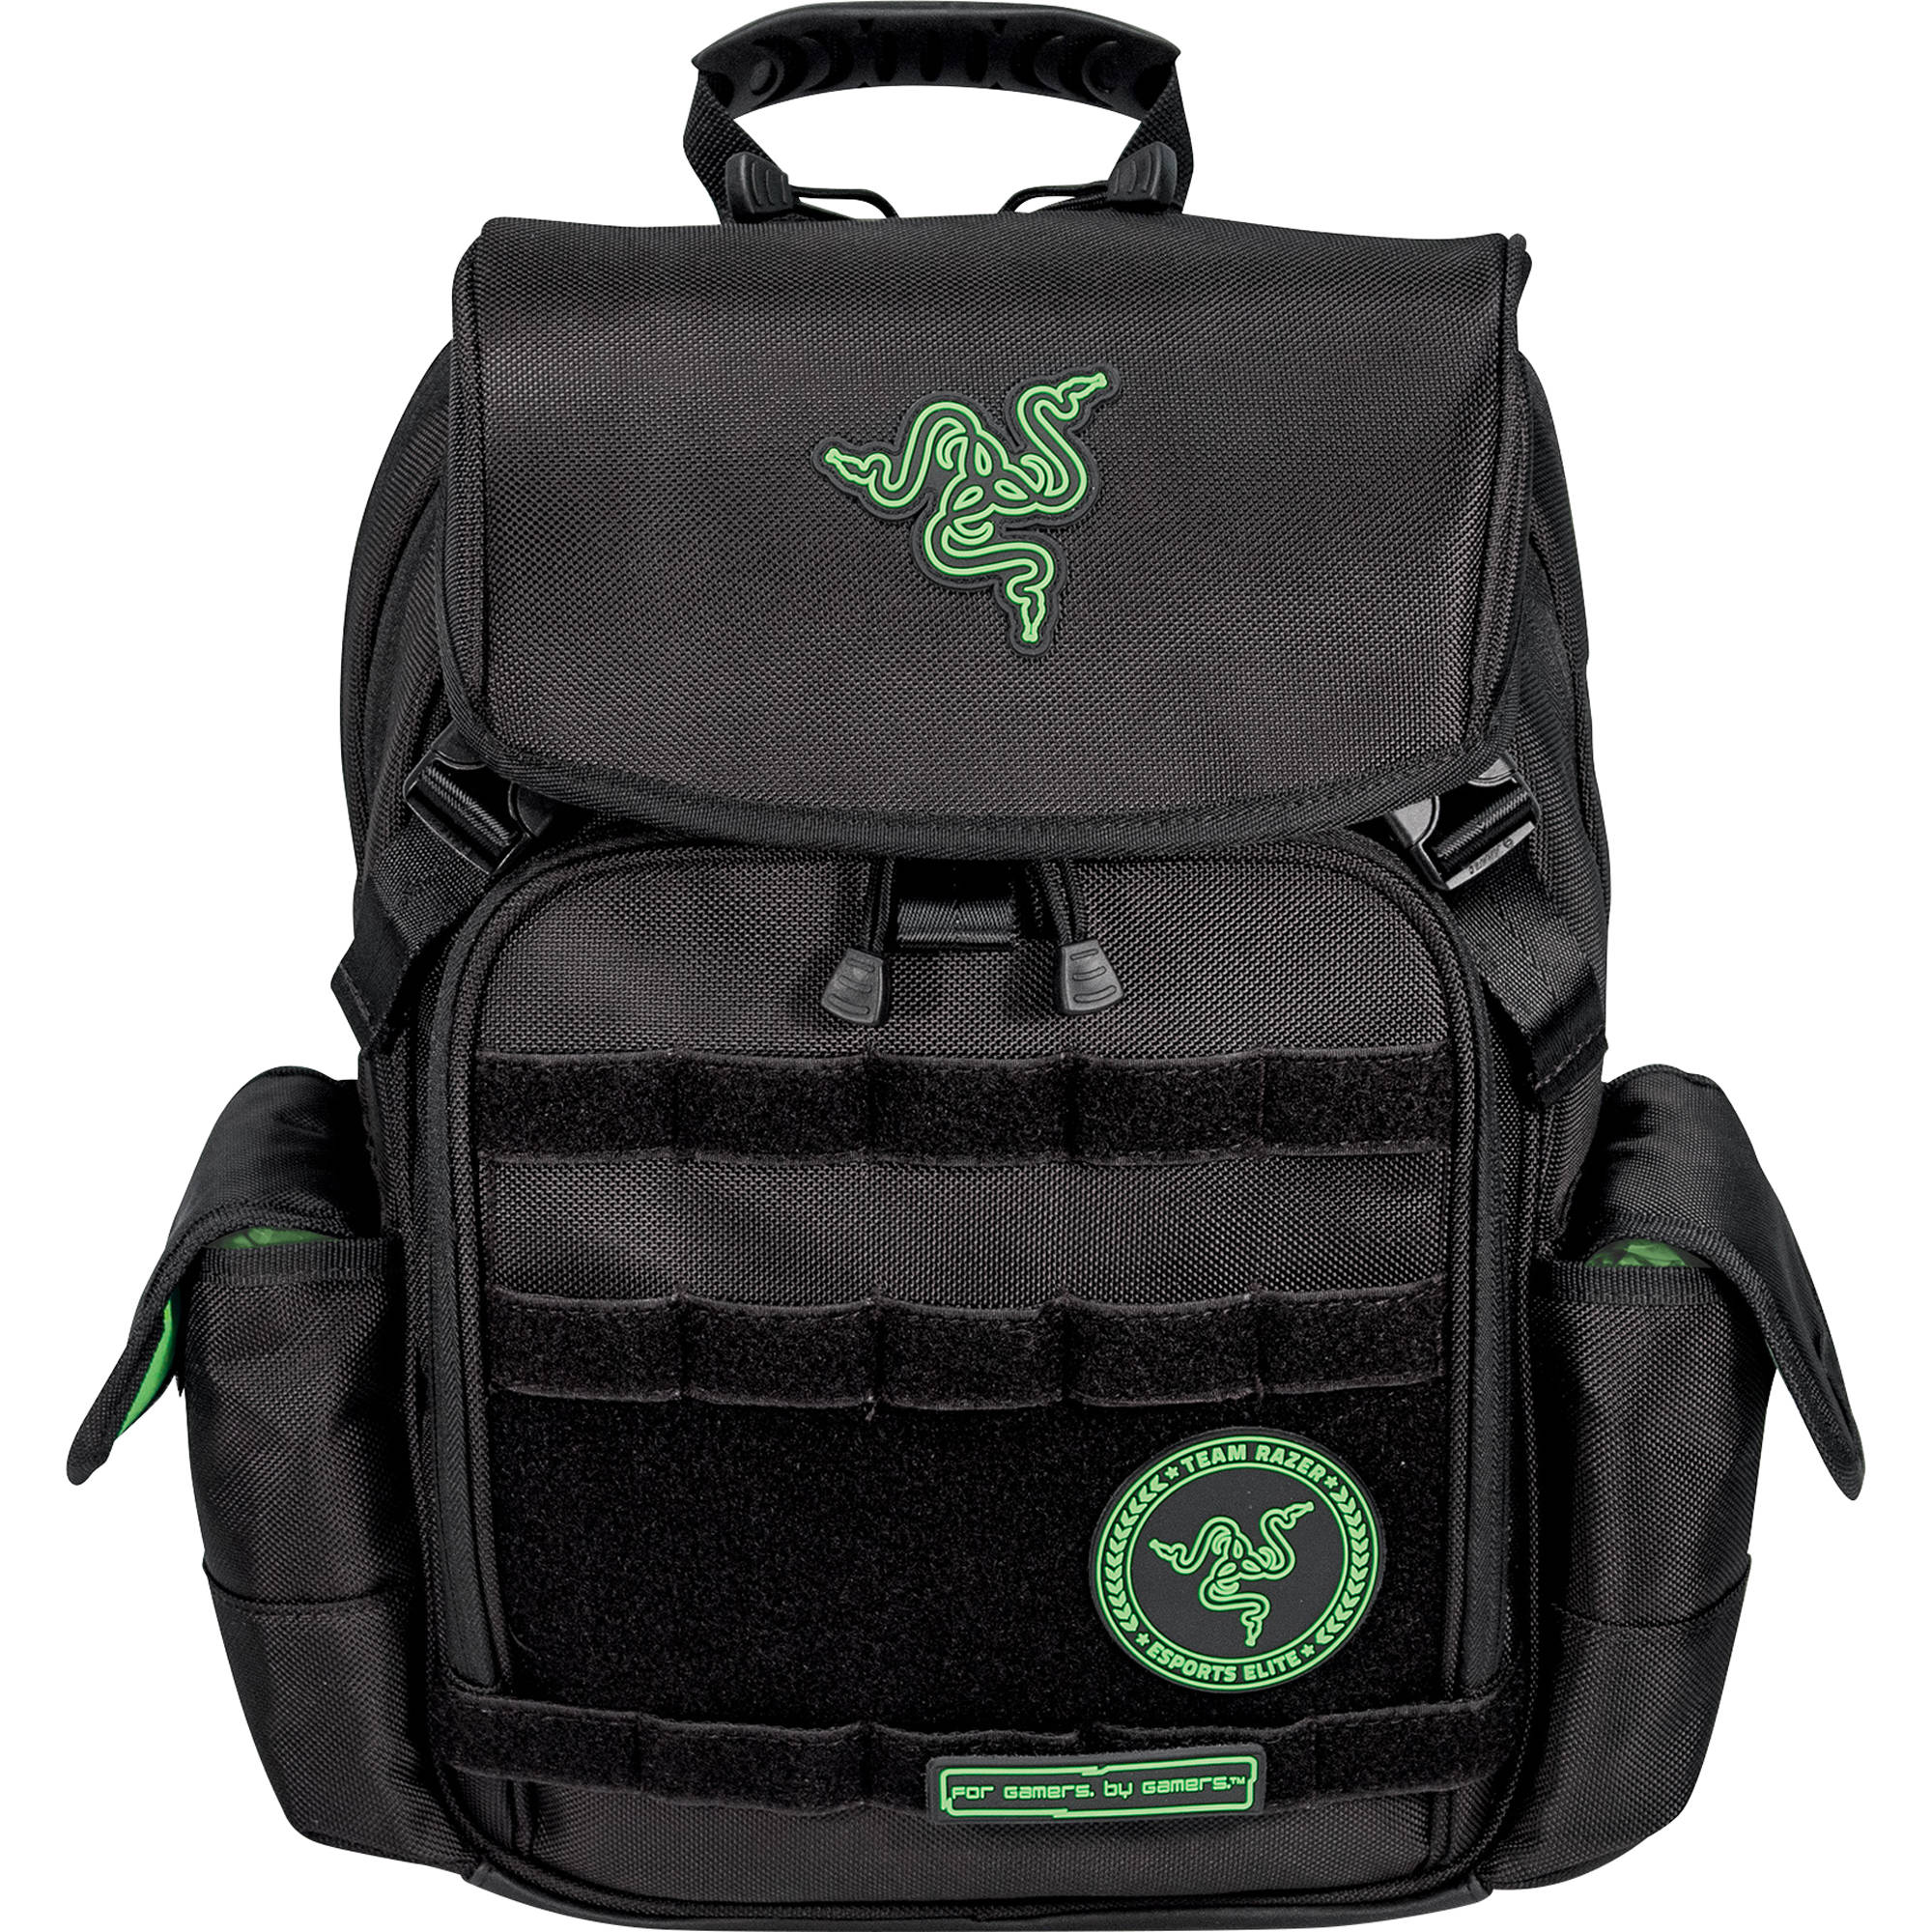 Mobile Edge Razer Tactical Gaming Backpack for 15